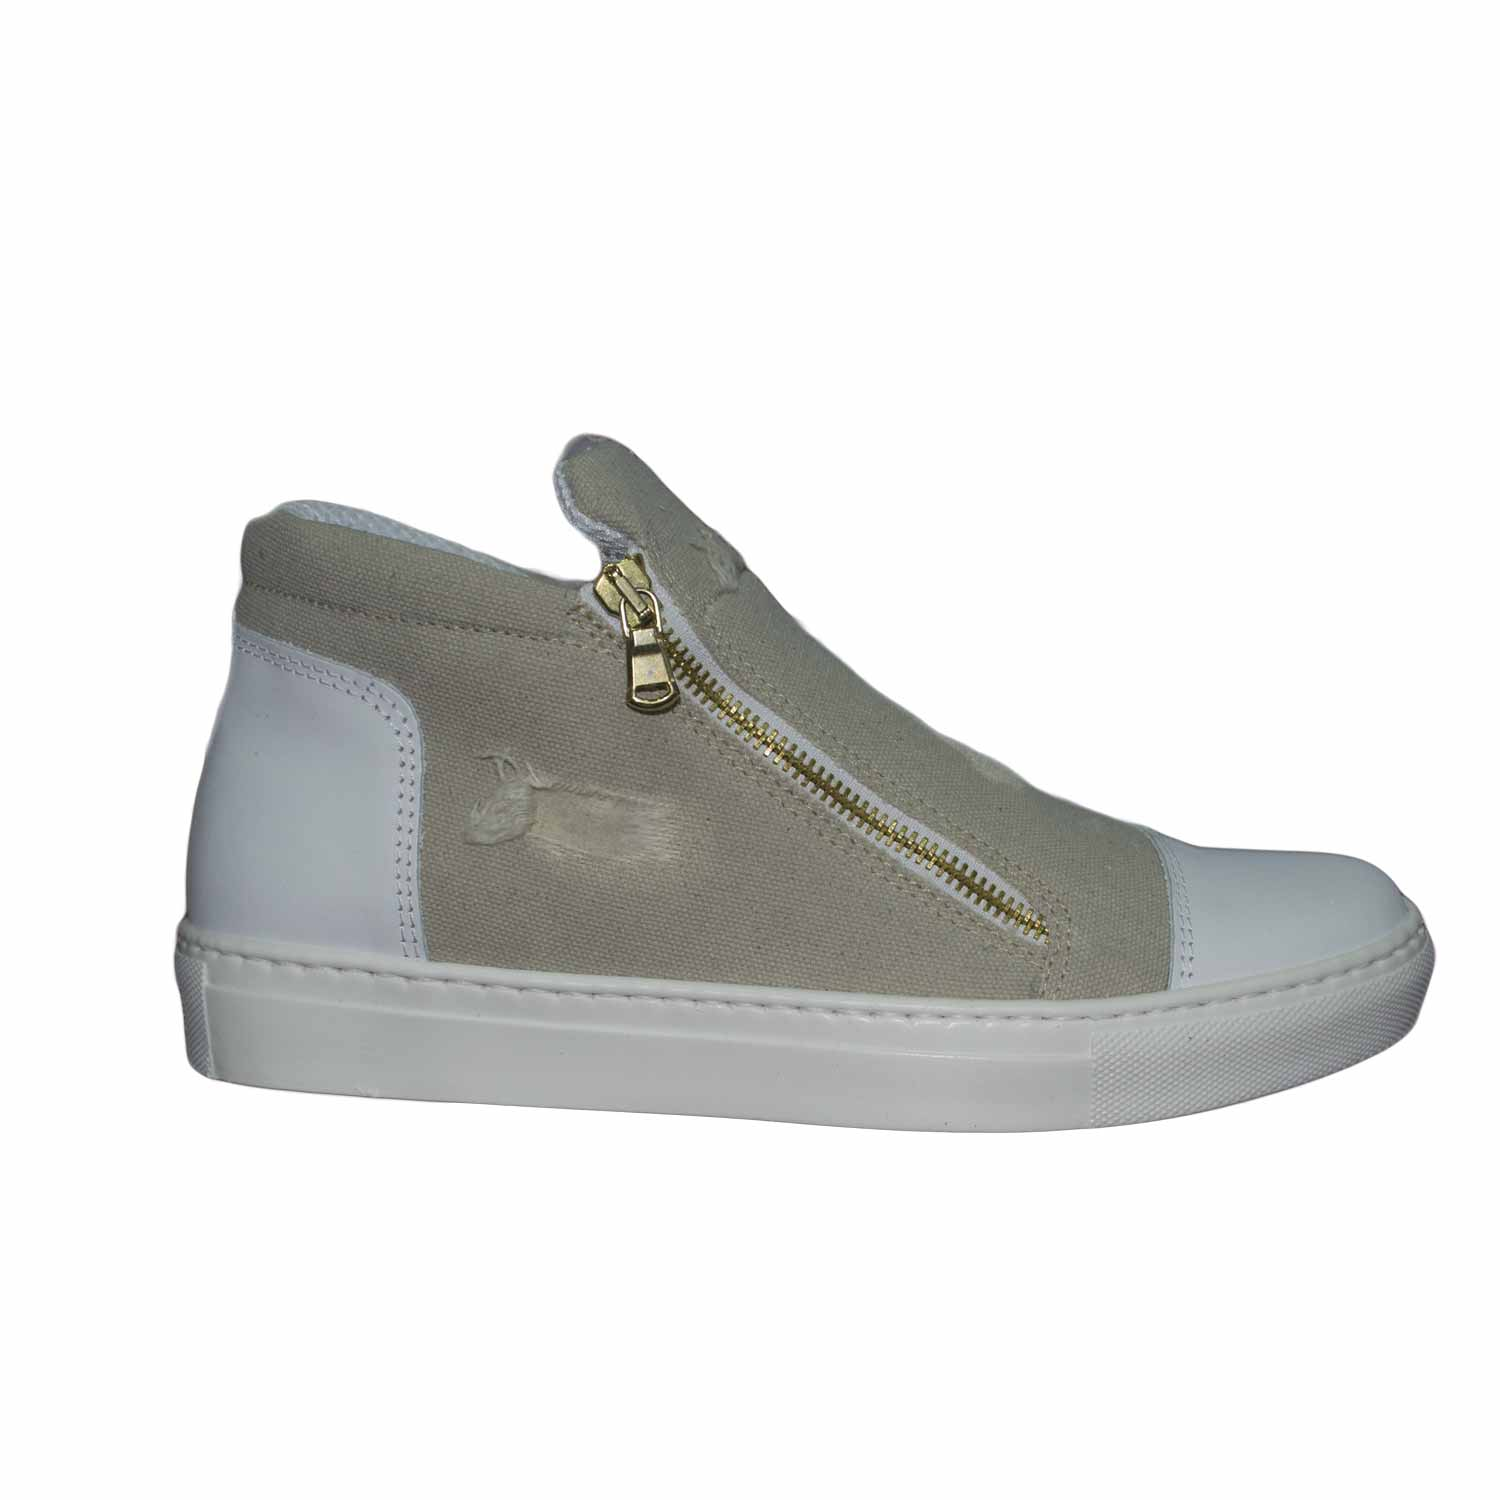 sneakers bassa uomo zip laterale rifinimenti in vera pelle made in italy beige jeans.